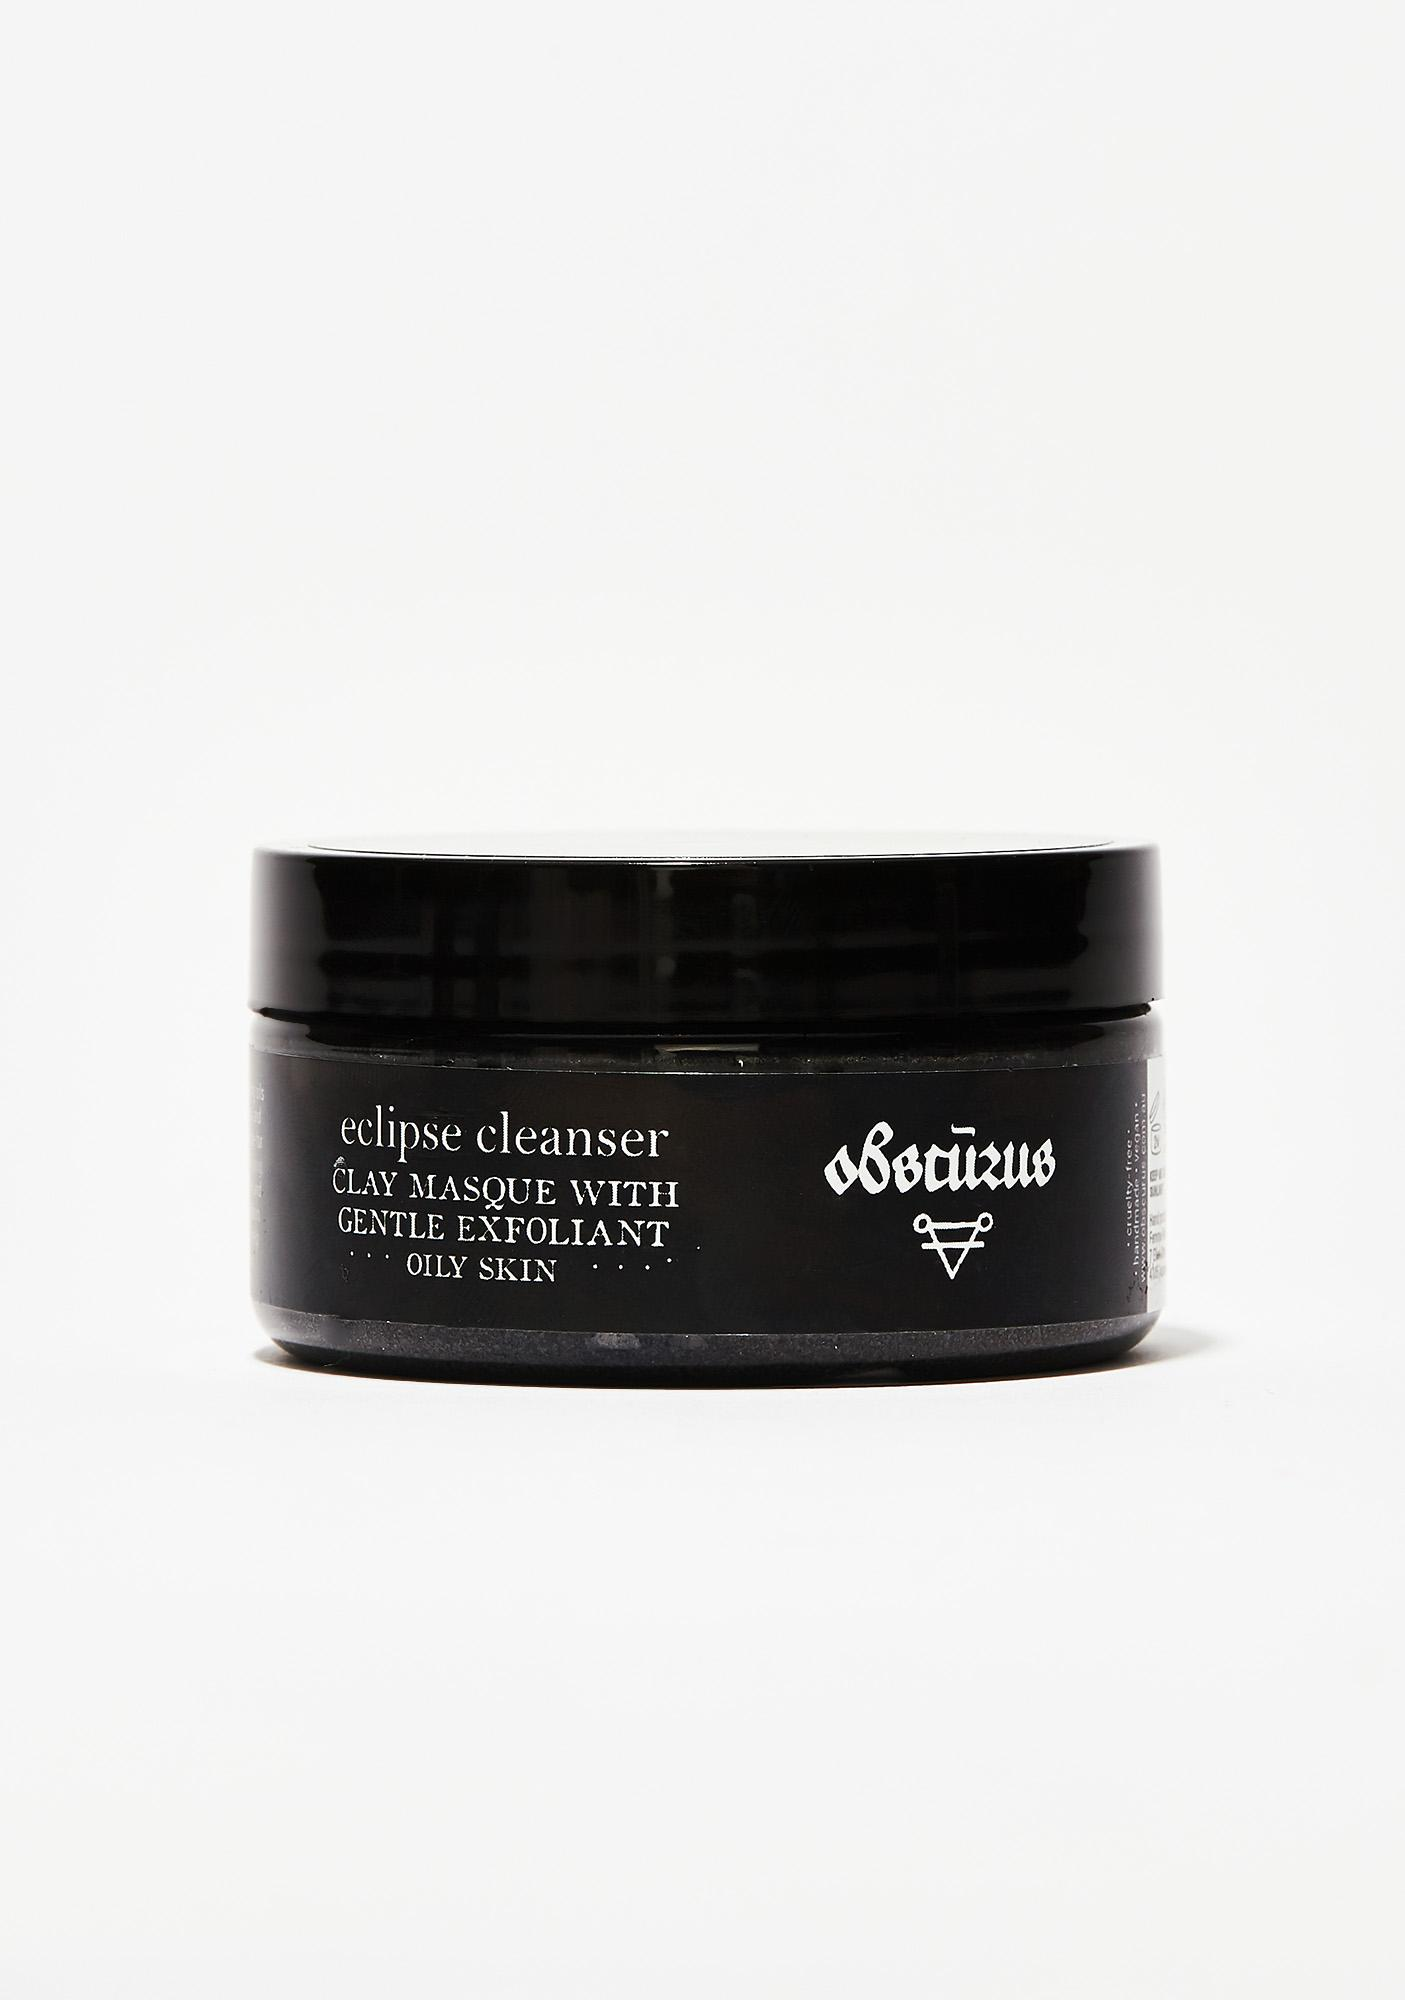 Obscurus Eclipse Cleanser & Clay Masque- Oily Skin